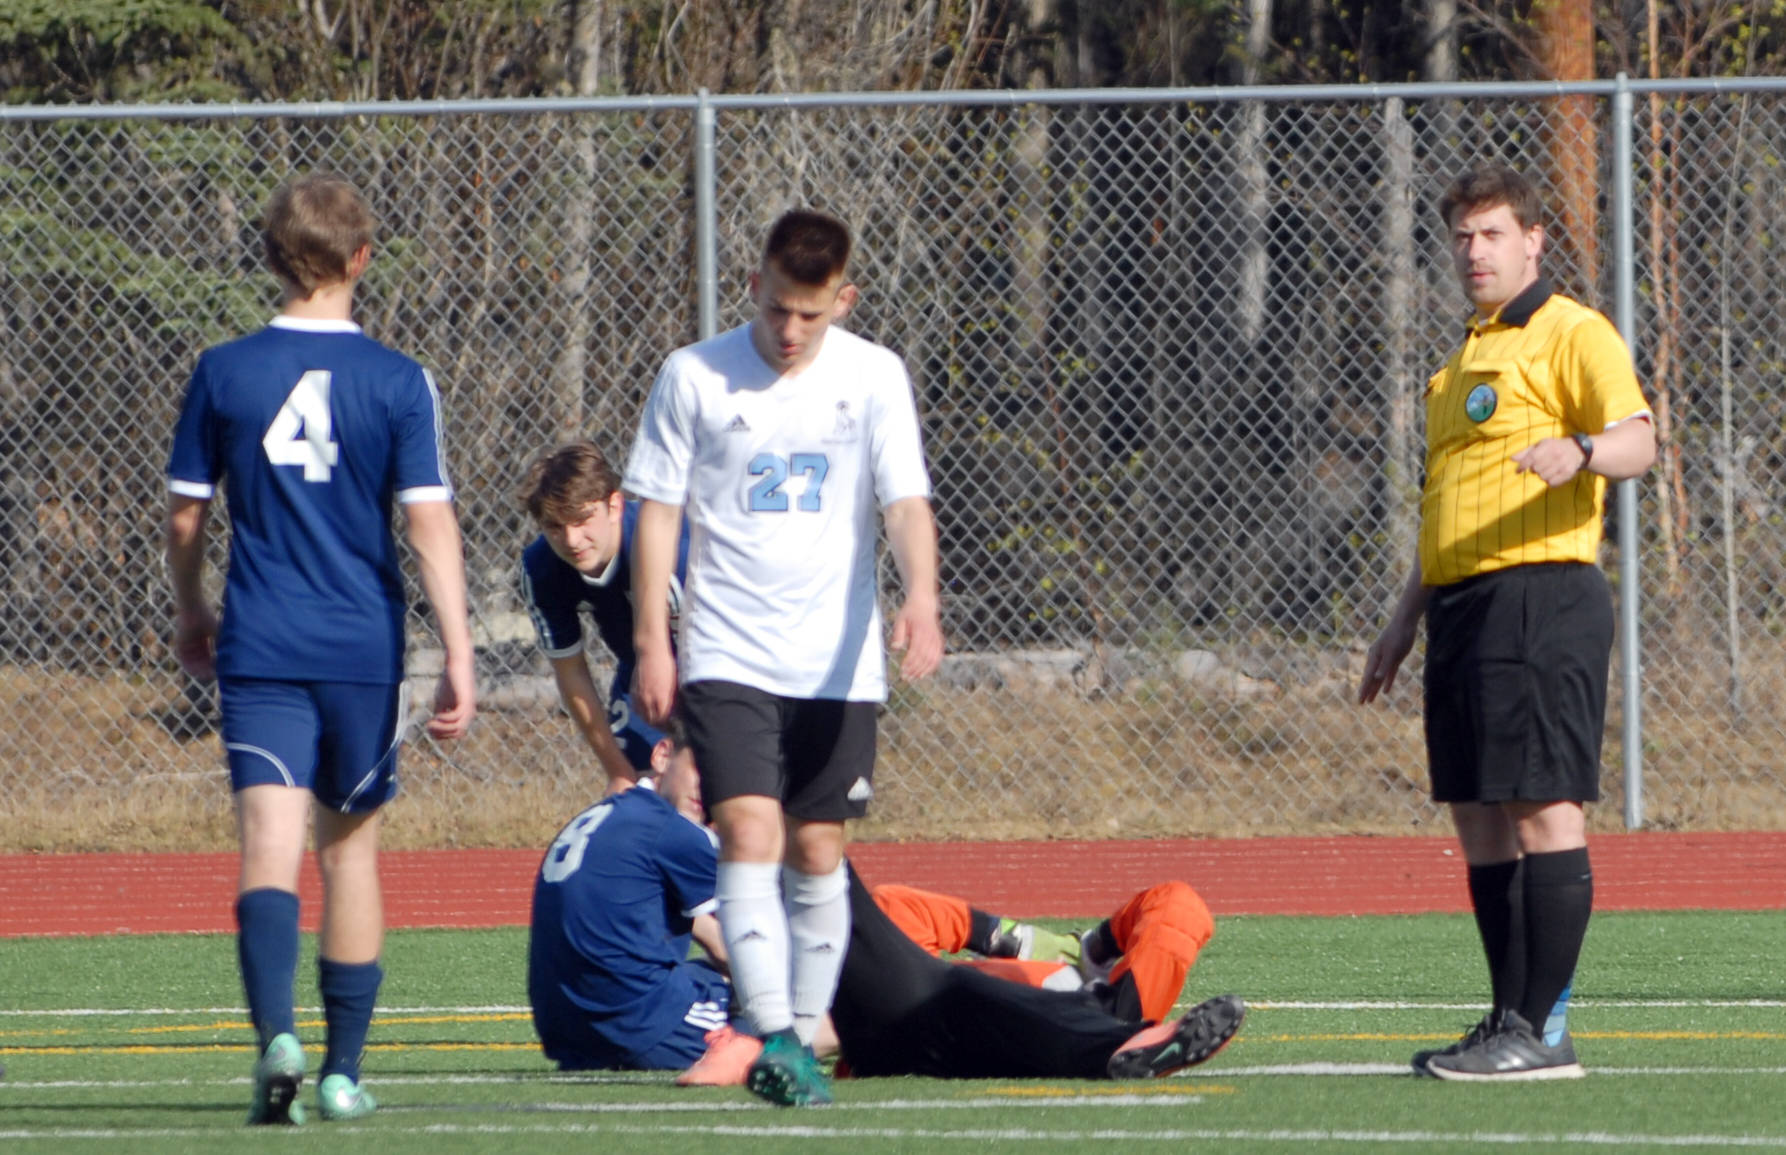 eagle river boys to forfeit soccer match due to player safety